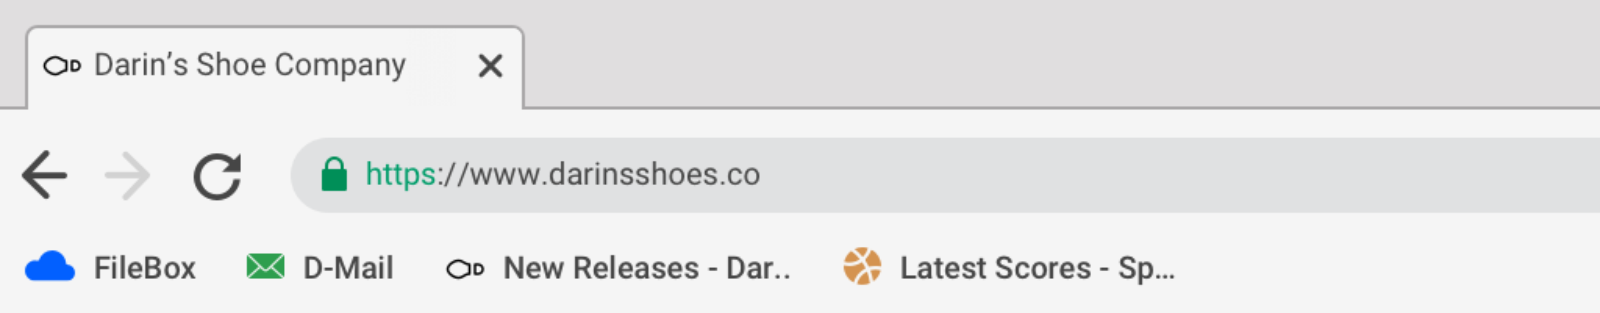 "Browser interface with a bookmarks toolbar. The toolbar contains four bookmark links. One is titled ""New Releases - Darin's Shoe Company"""